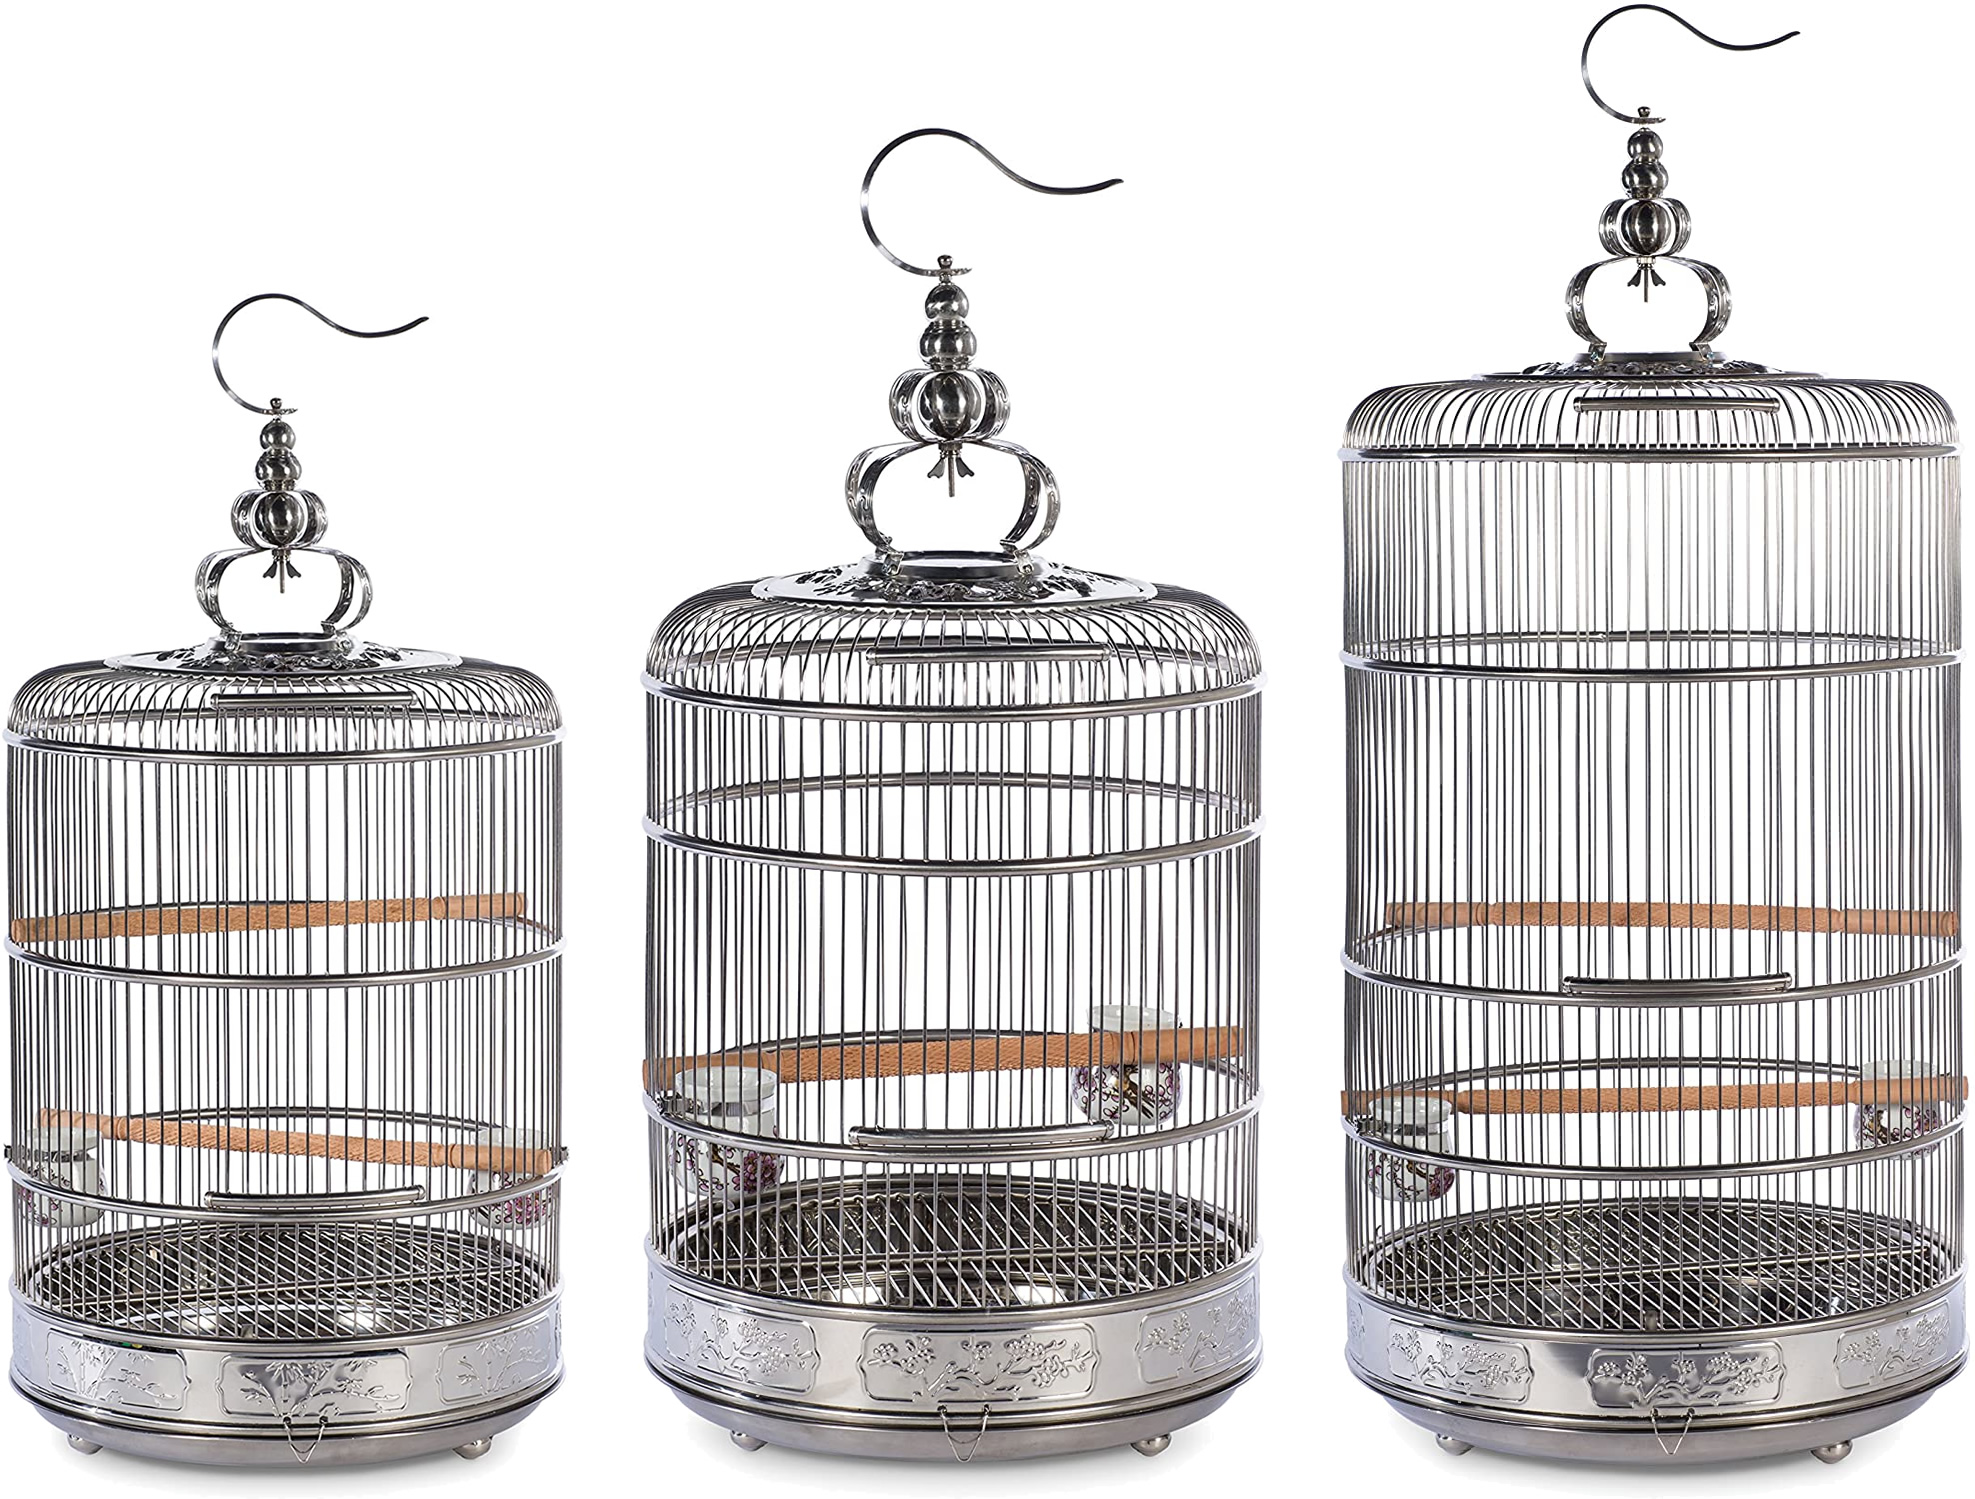 Prevue Pet Products Stainless Steel Bird Cages